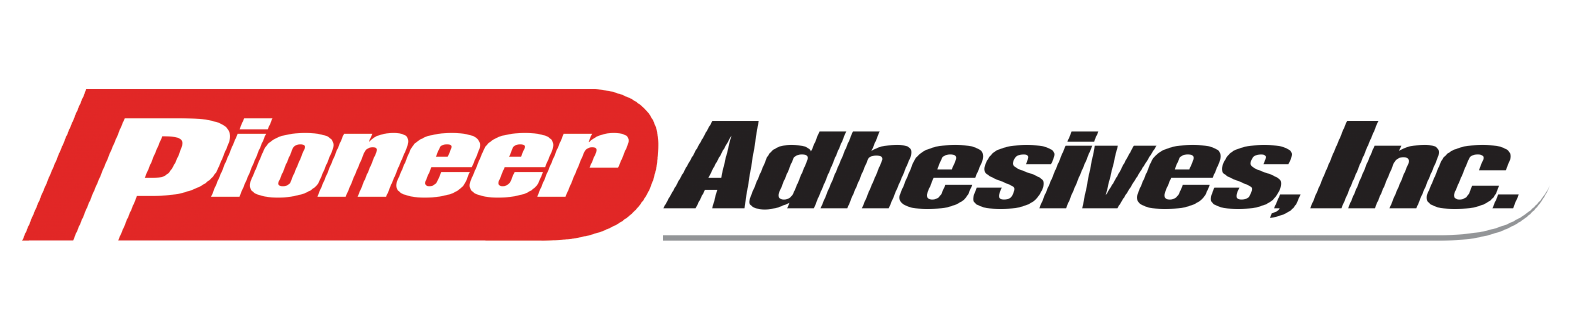 Pioneer Adhesives Inc.